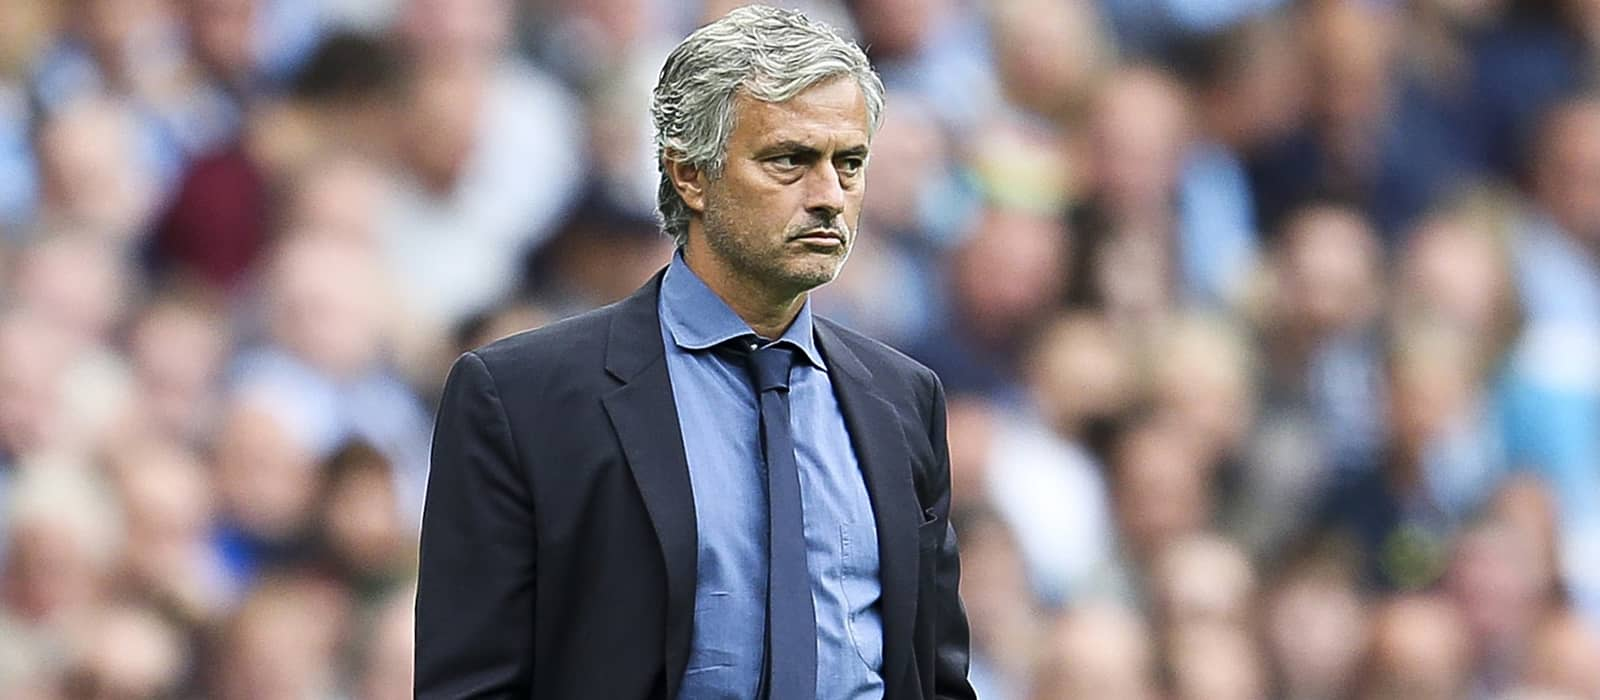 LIVE: Man United news, transfers and gossip – Jose Mourinho backed as the right man for United